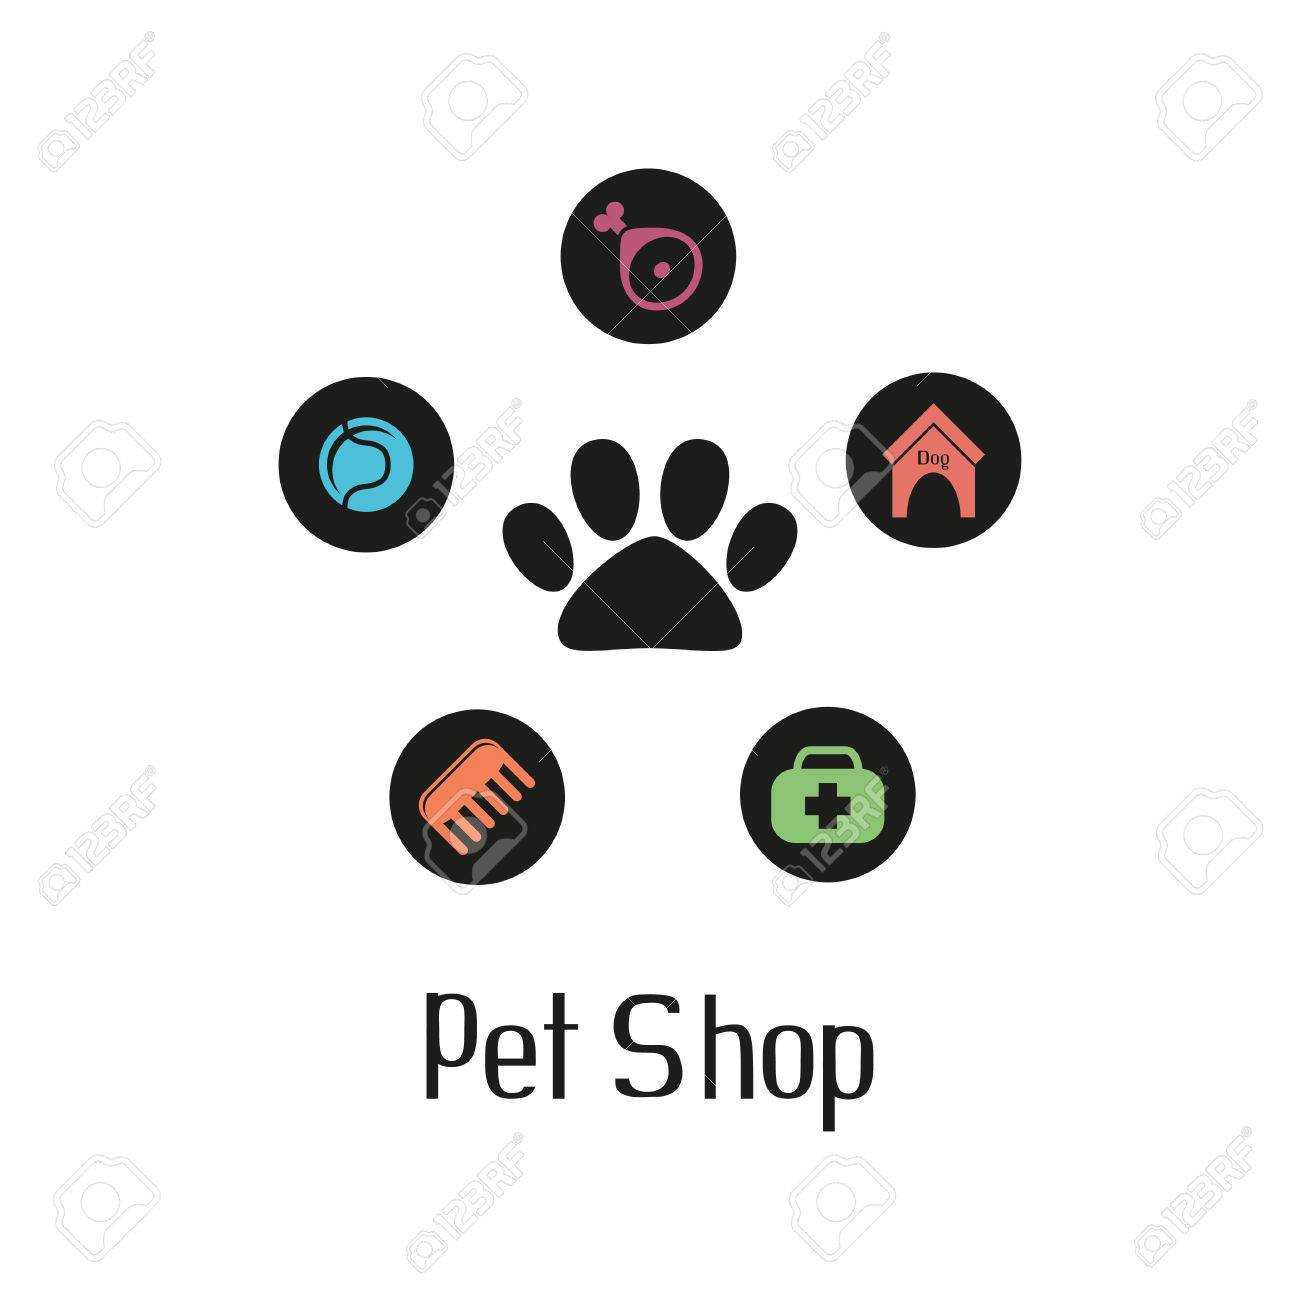 Pet shop logo with pet paw and what dog needs - 33429284